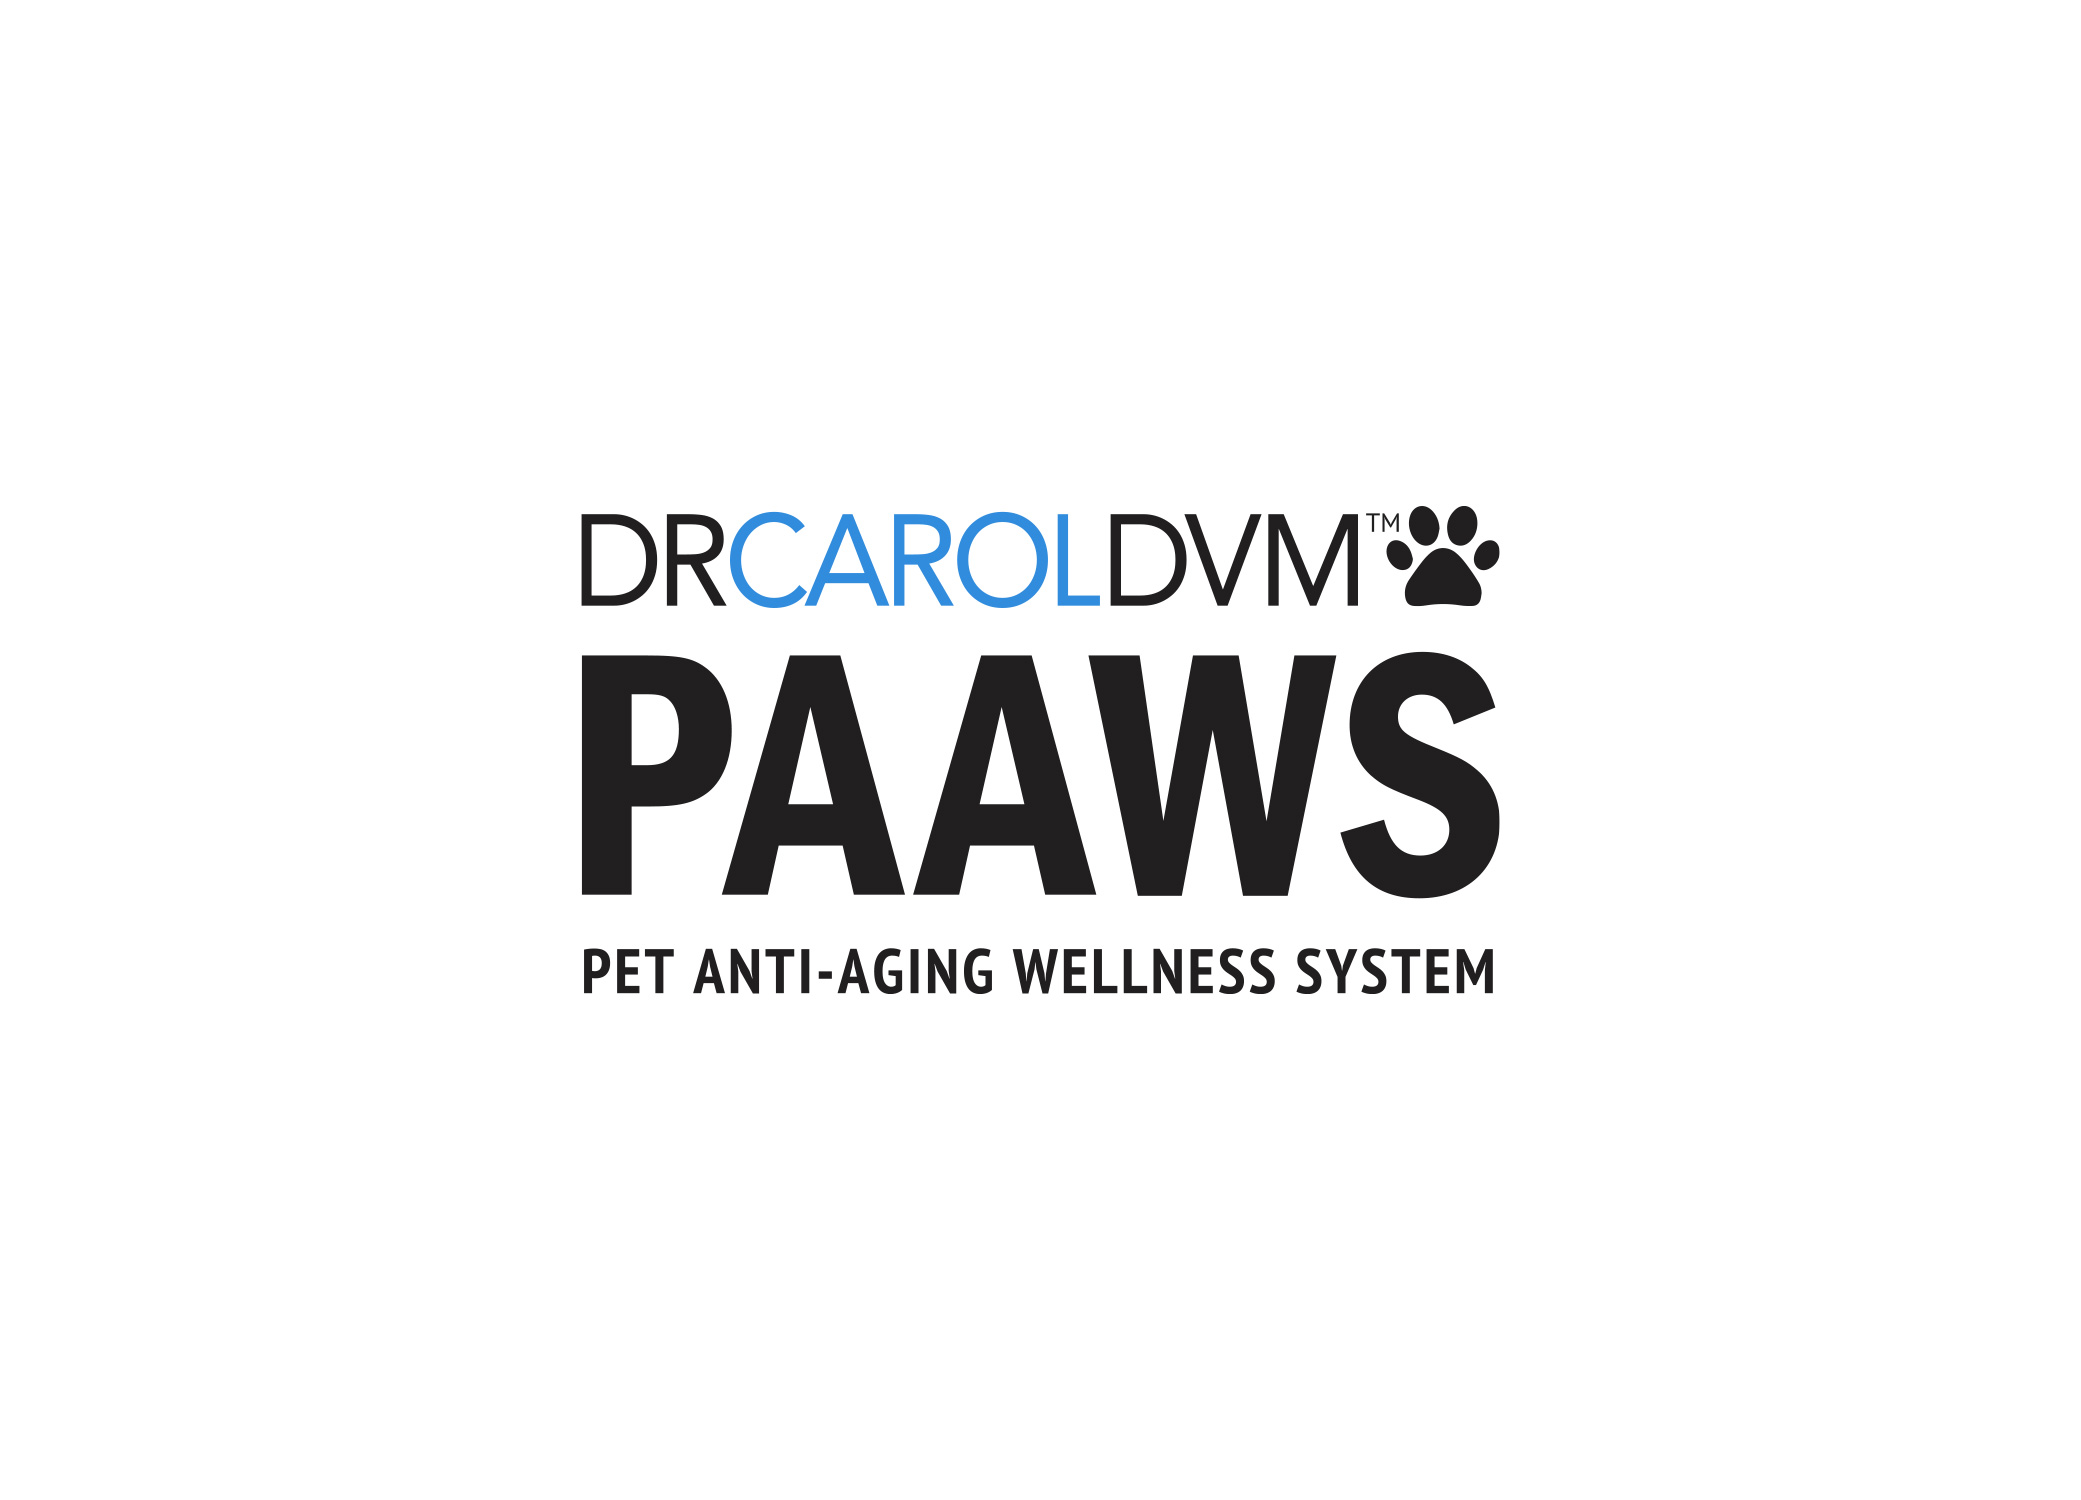 Dr. Carol DVM clinical but friendly logo design for PAAWS pet supplement brand in black and blue with paw icon.